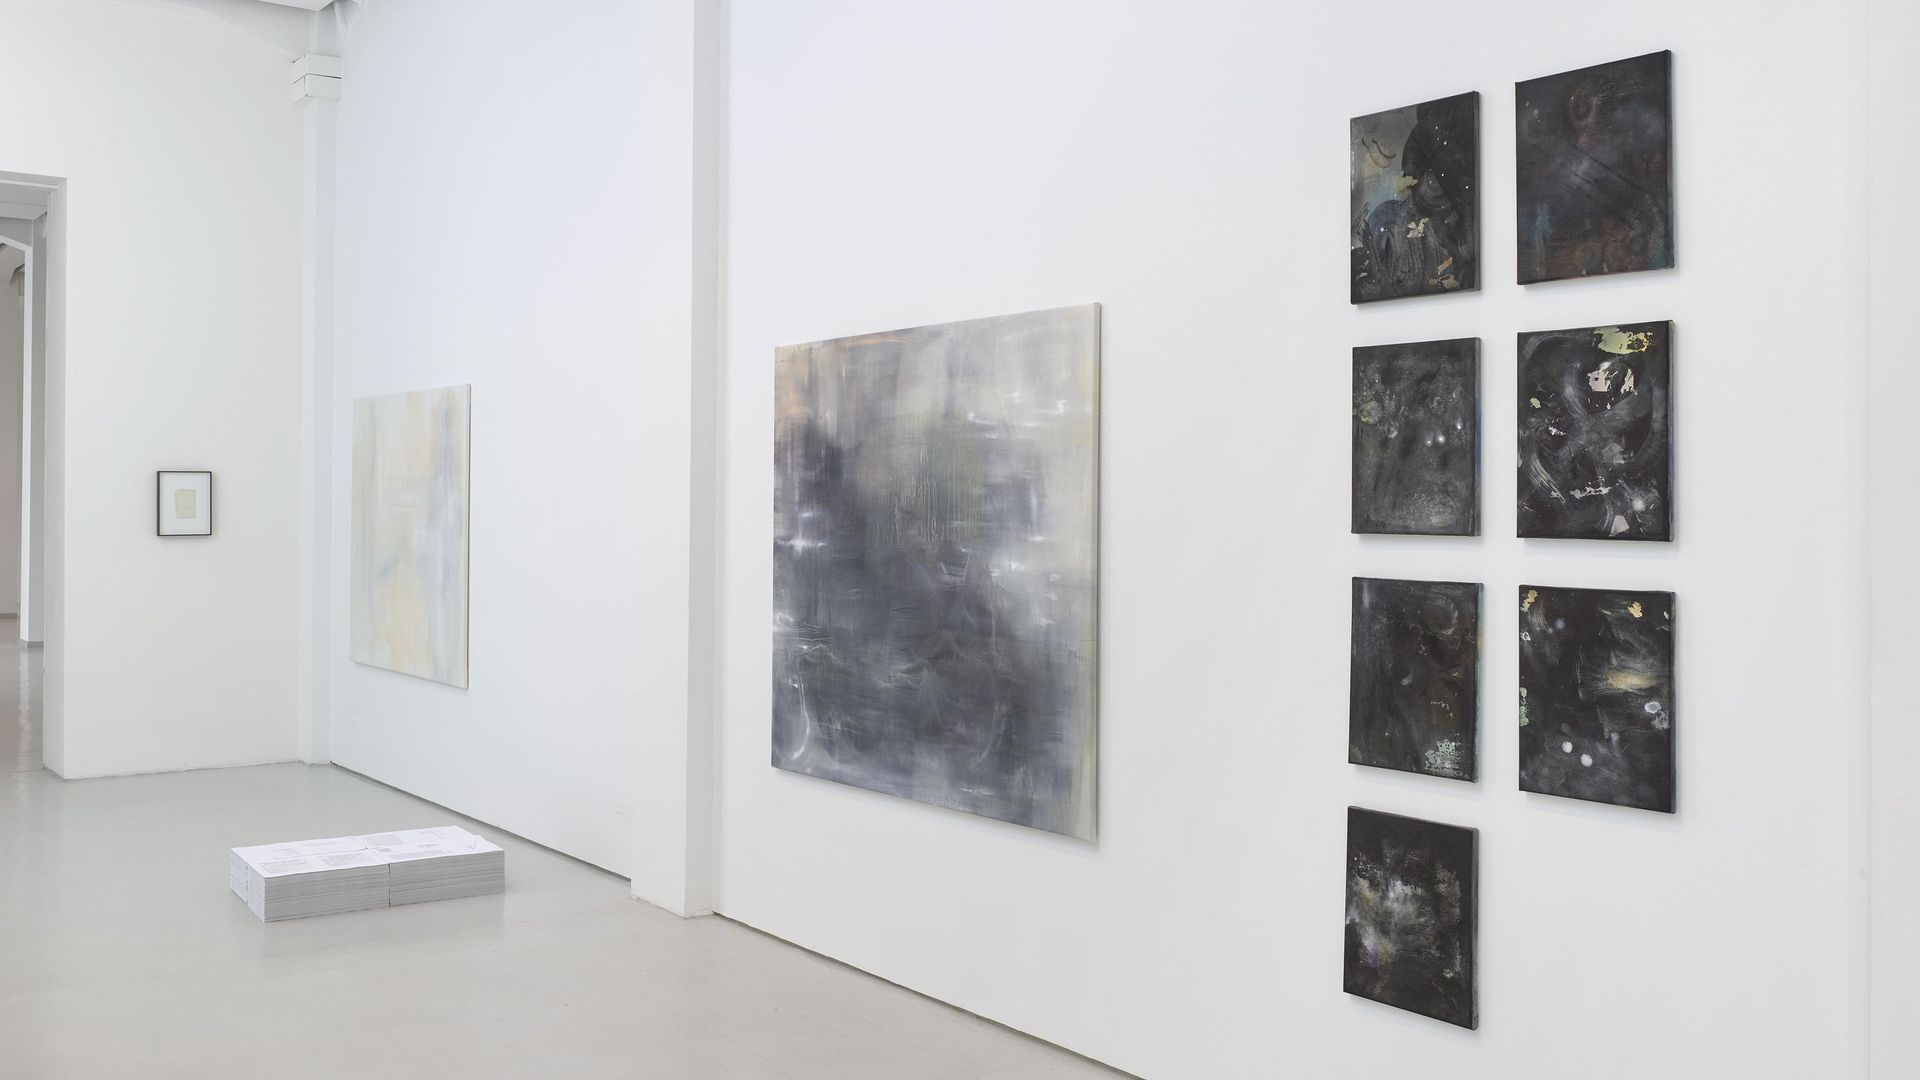 Nadia Lichtig, Ausstellungsansicht / installation view Catching the Light, KAI 10 / Arthena Foundation